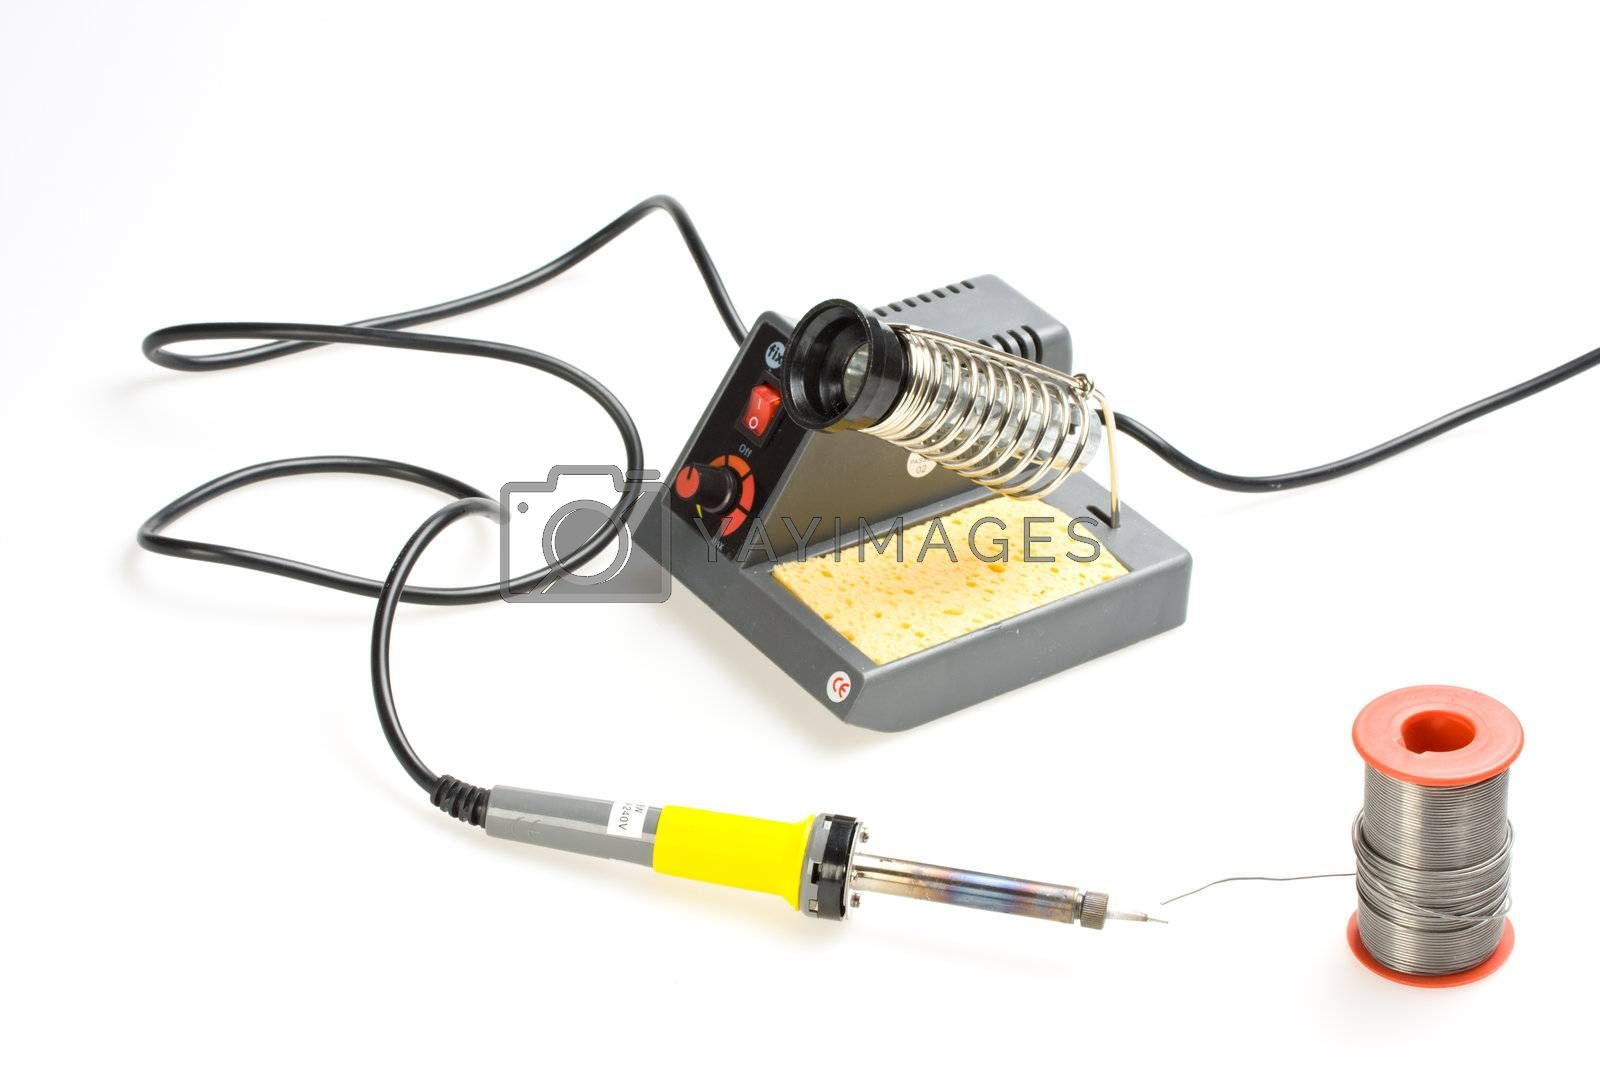 soldering station isolated on white background